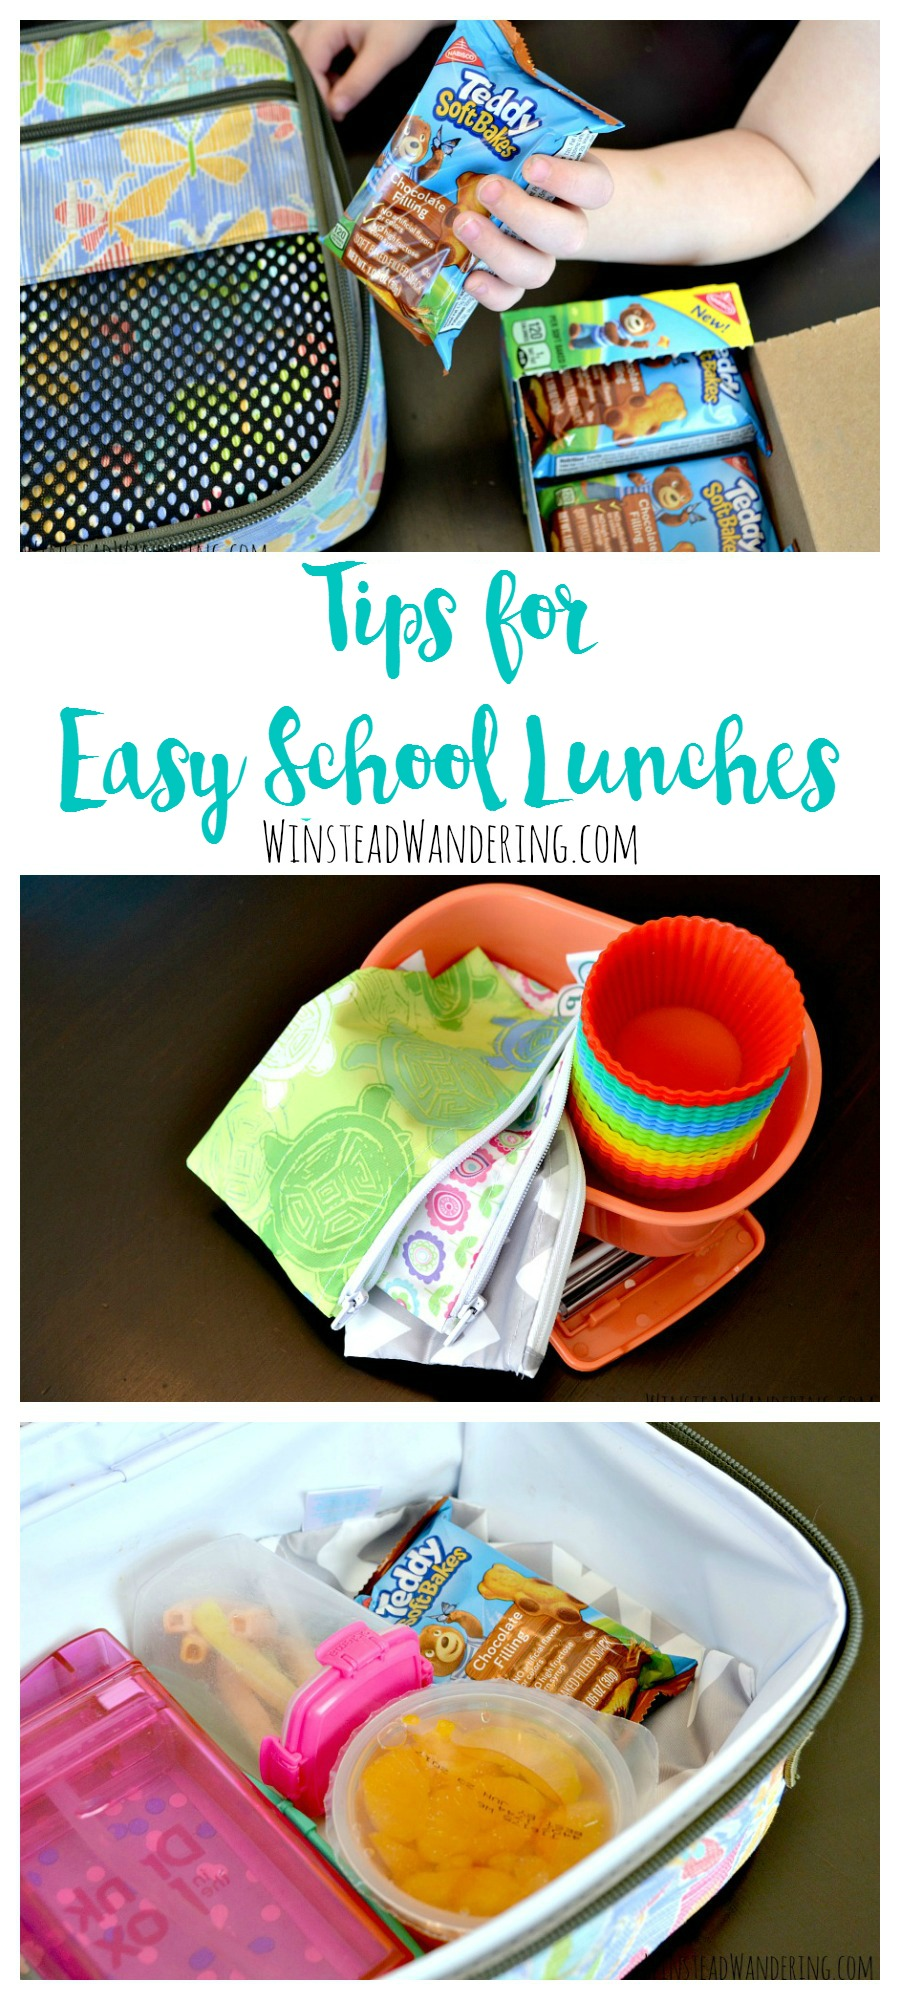 Does packing your kids' lunches fill you with dread? It doesn't have to! Check out these tips for easy school lunches.